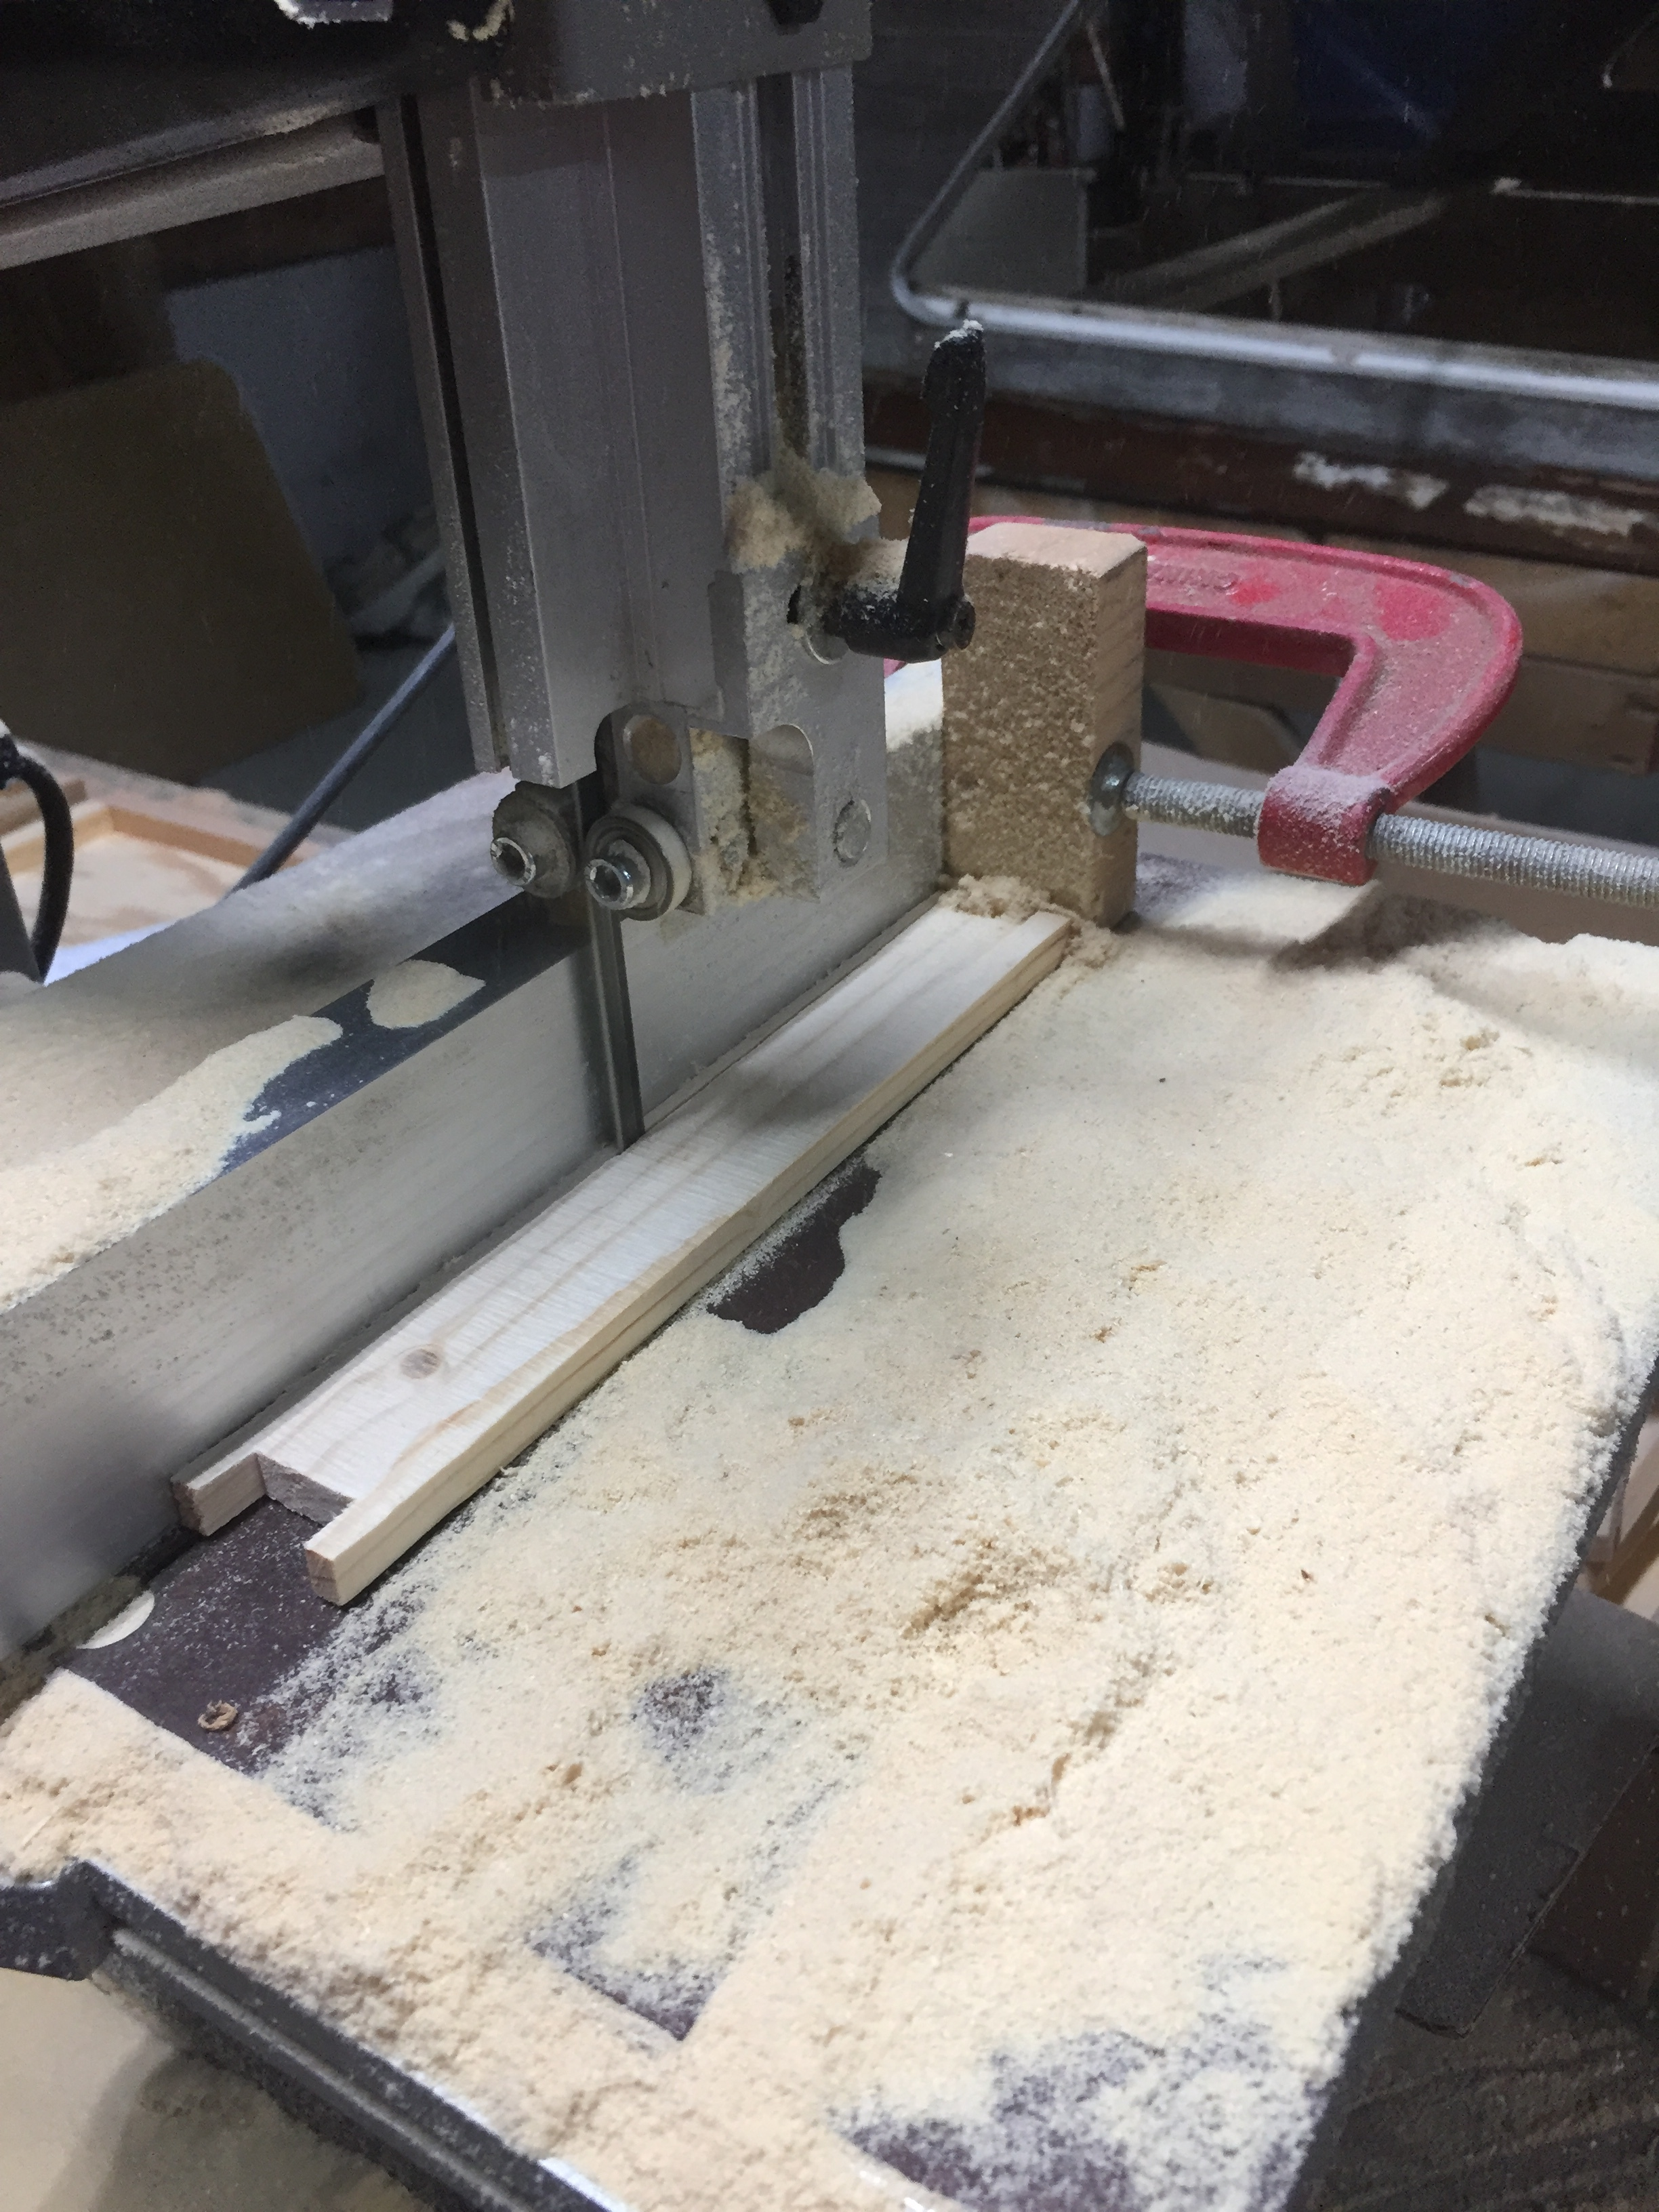 Cutting the frame side profile. Use a stop block for consistent cuts.